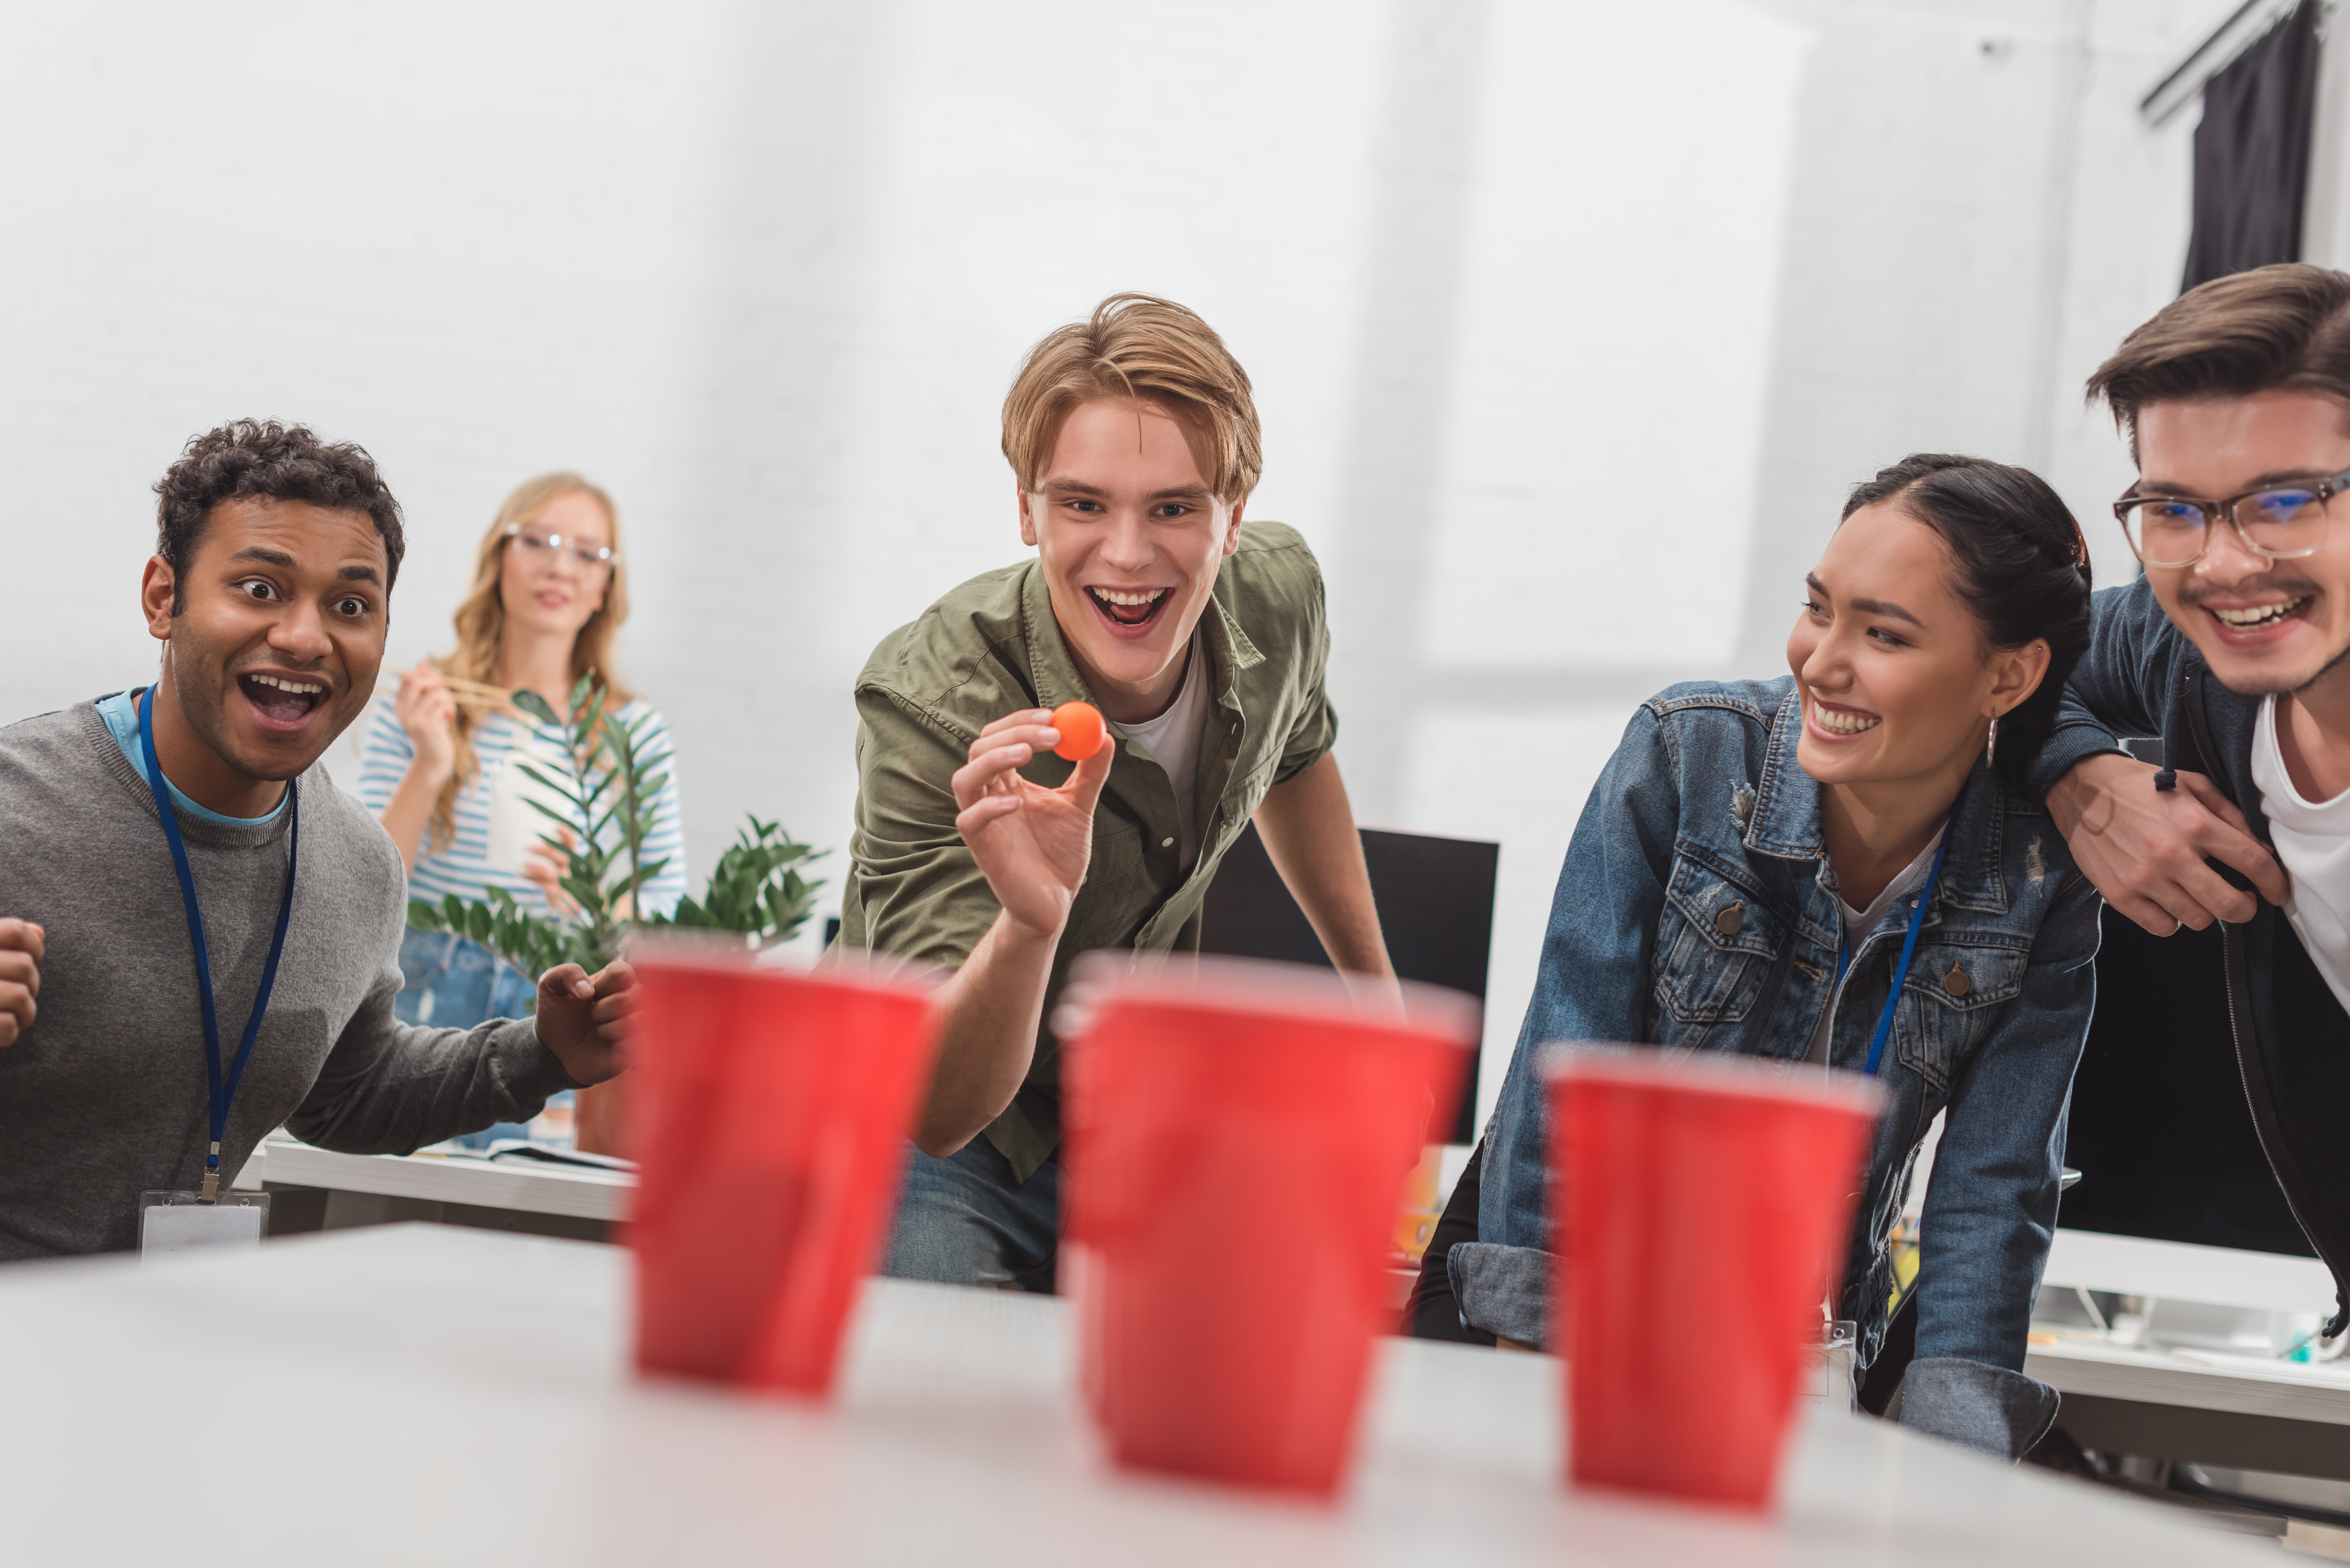 marketing agency market research beer pong